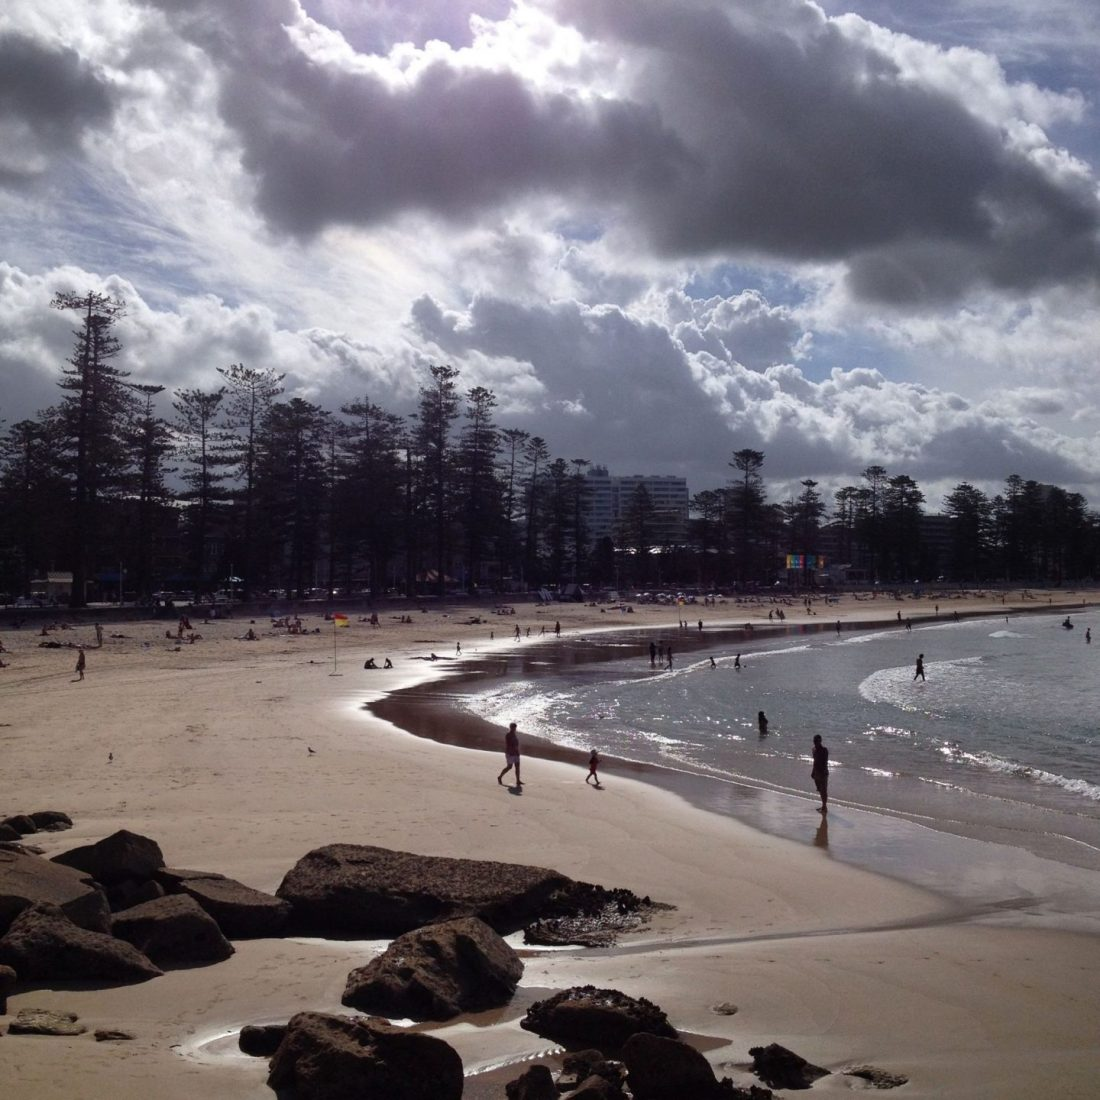 Manly Beach at sunset